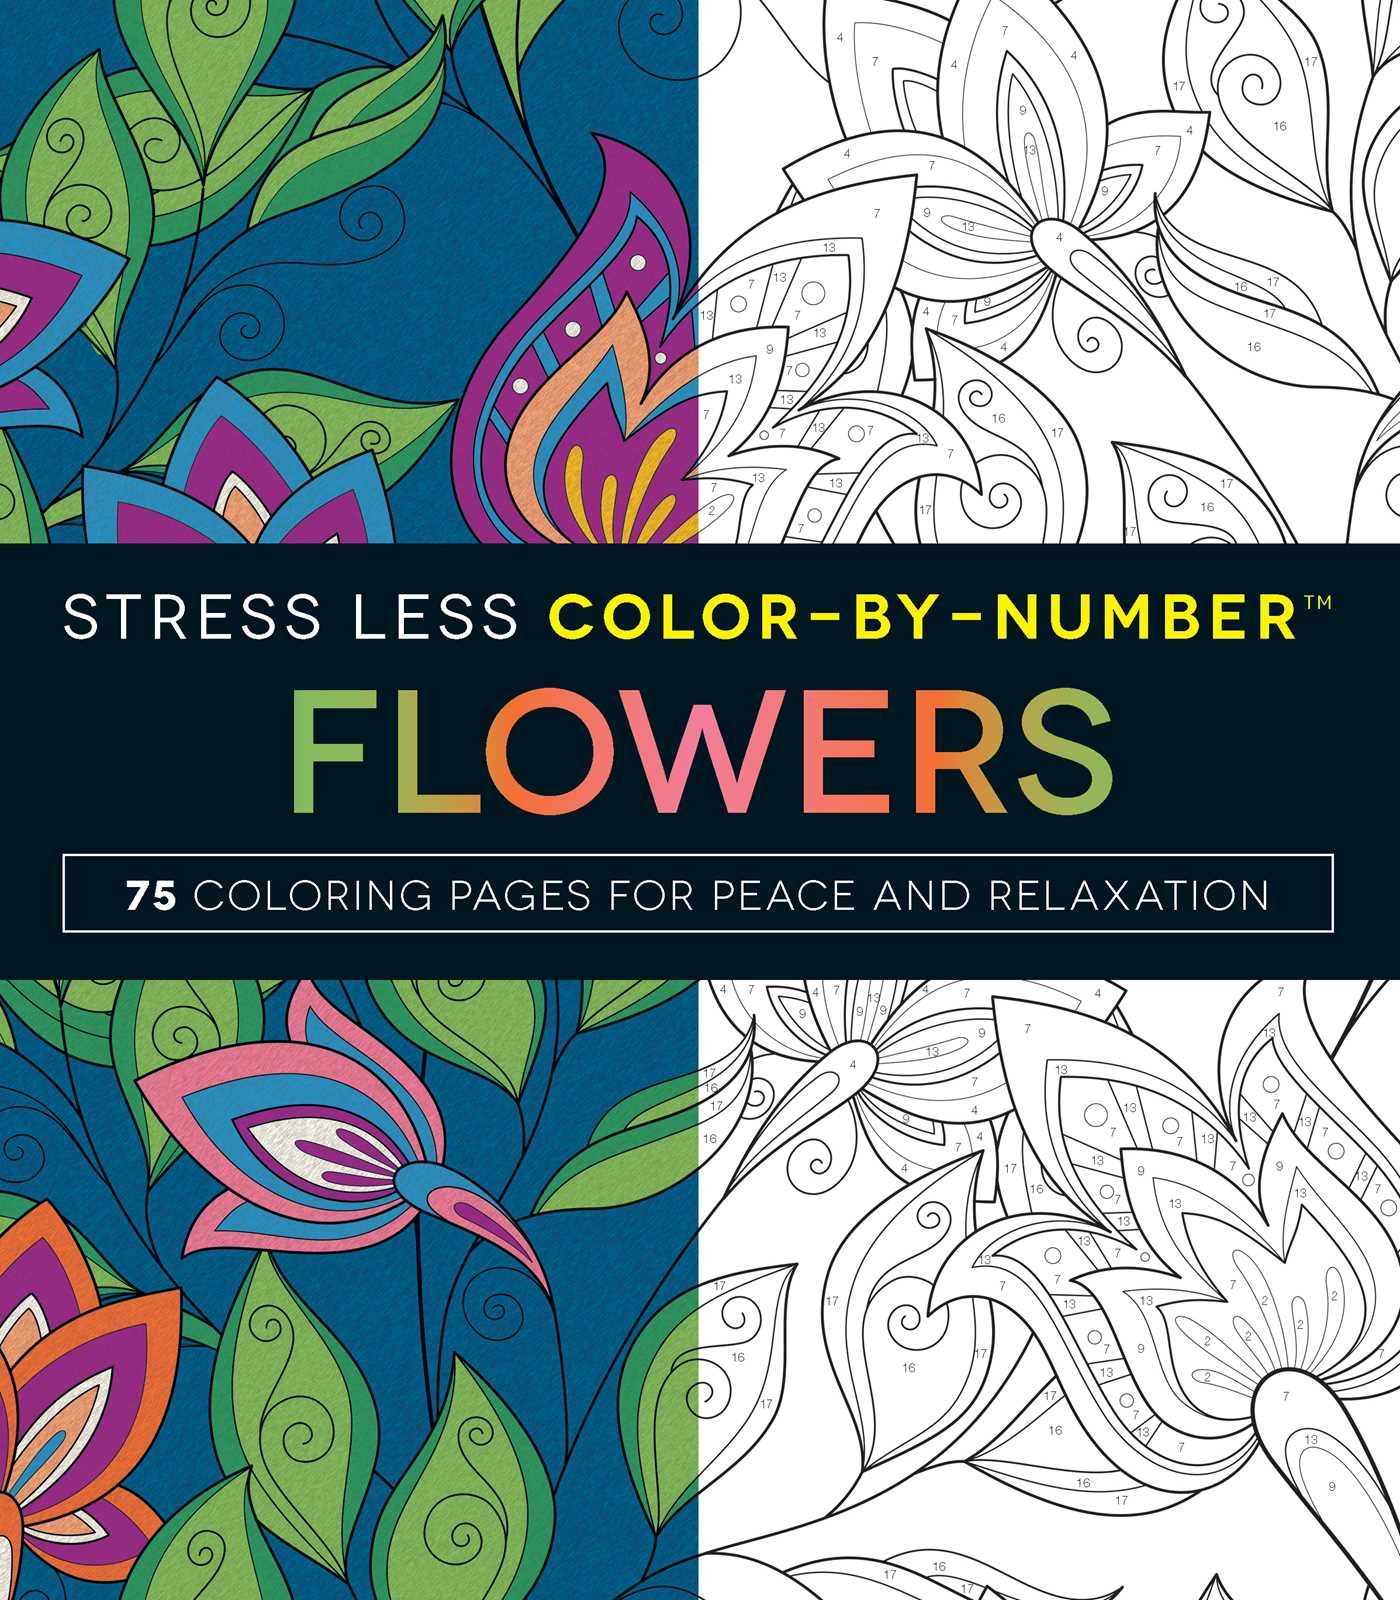 Download Stress Less Color-By-Number Flowers: 75 Coloring Pages for Peace and Relaxation ebook